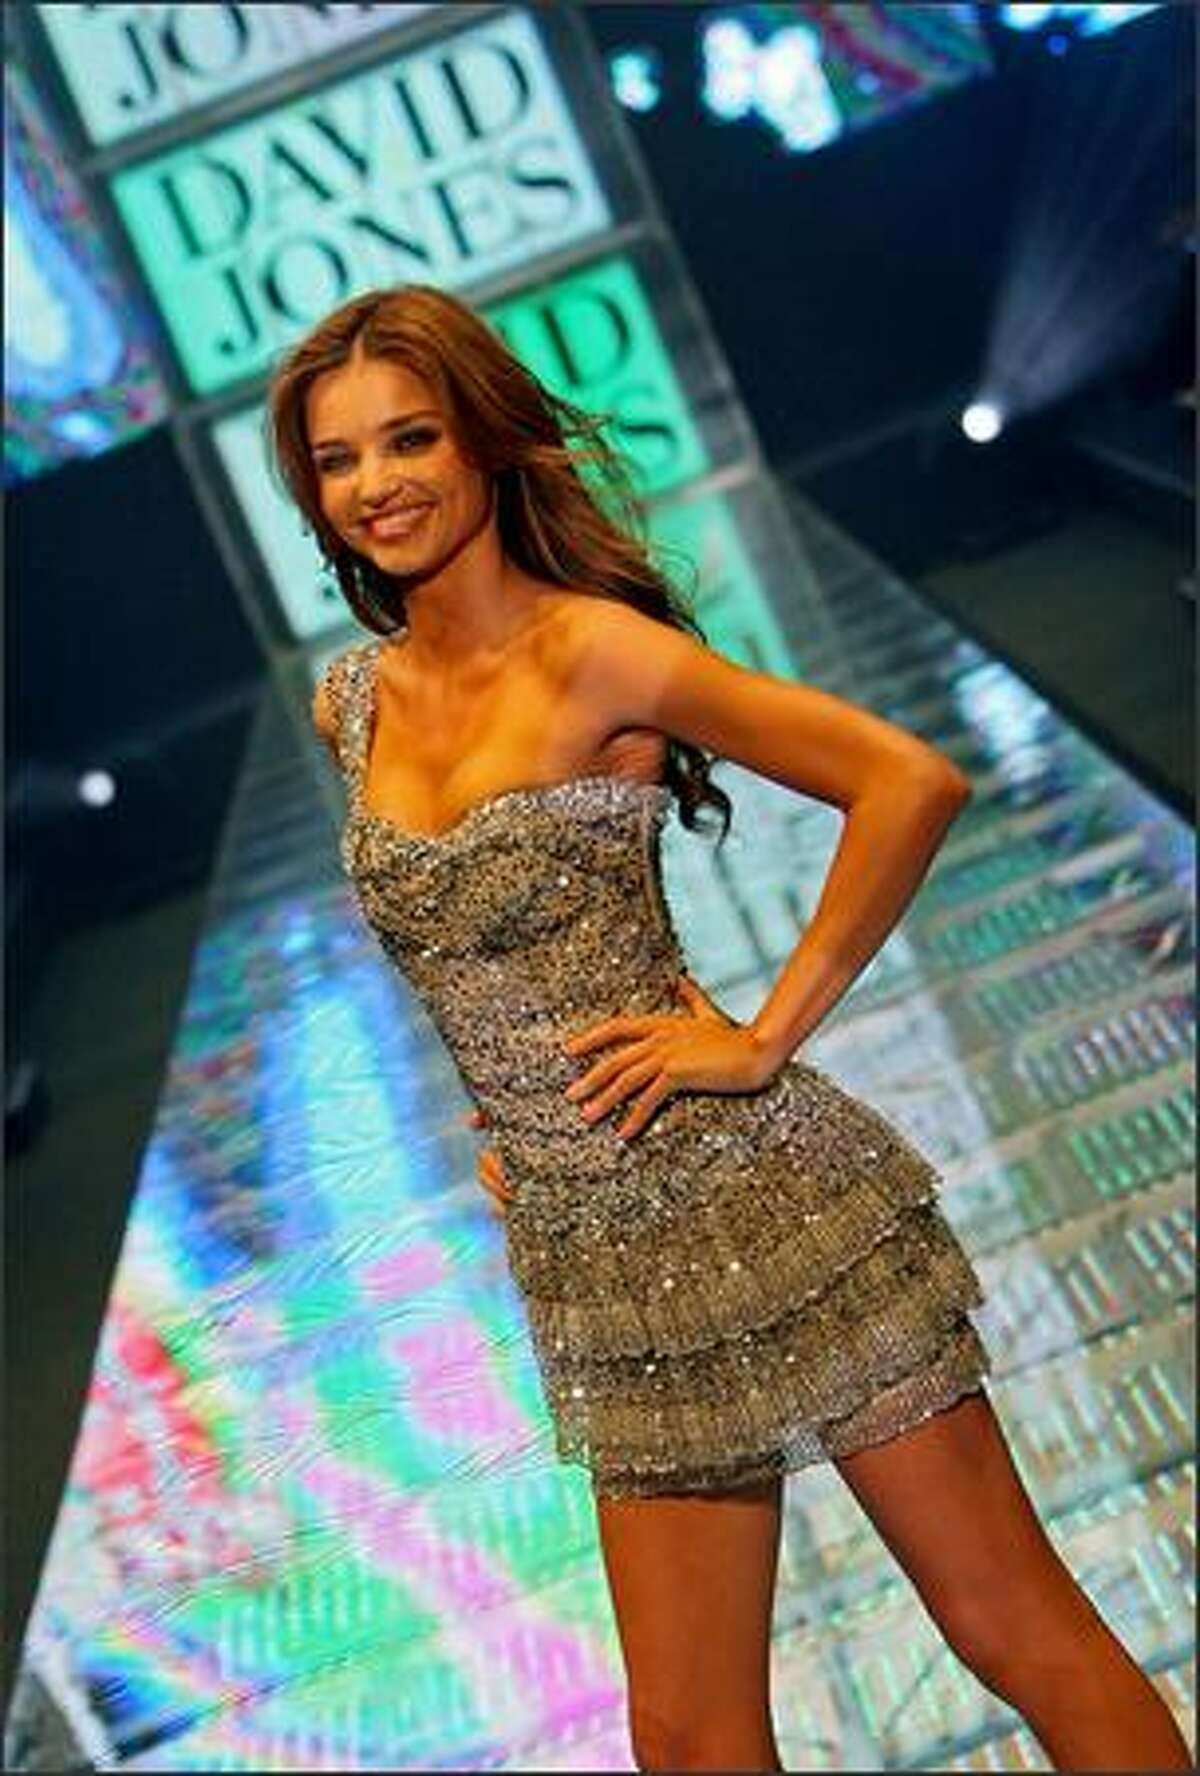 Australian supermodel Miranda Kerr parades a dress by Paris-based Australian designer Collette Dinnigan during the David Jones Summer Fashion Show in Sydney on August 5, 2008. The event was Miranda Kerr's debut appearance on the runway for retailer David Jones as the successor to former supermodel Megan Gale. AFP PHOTO/Torsten BLACKWOOD